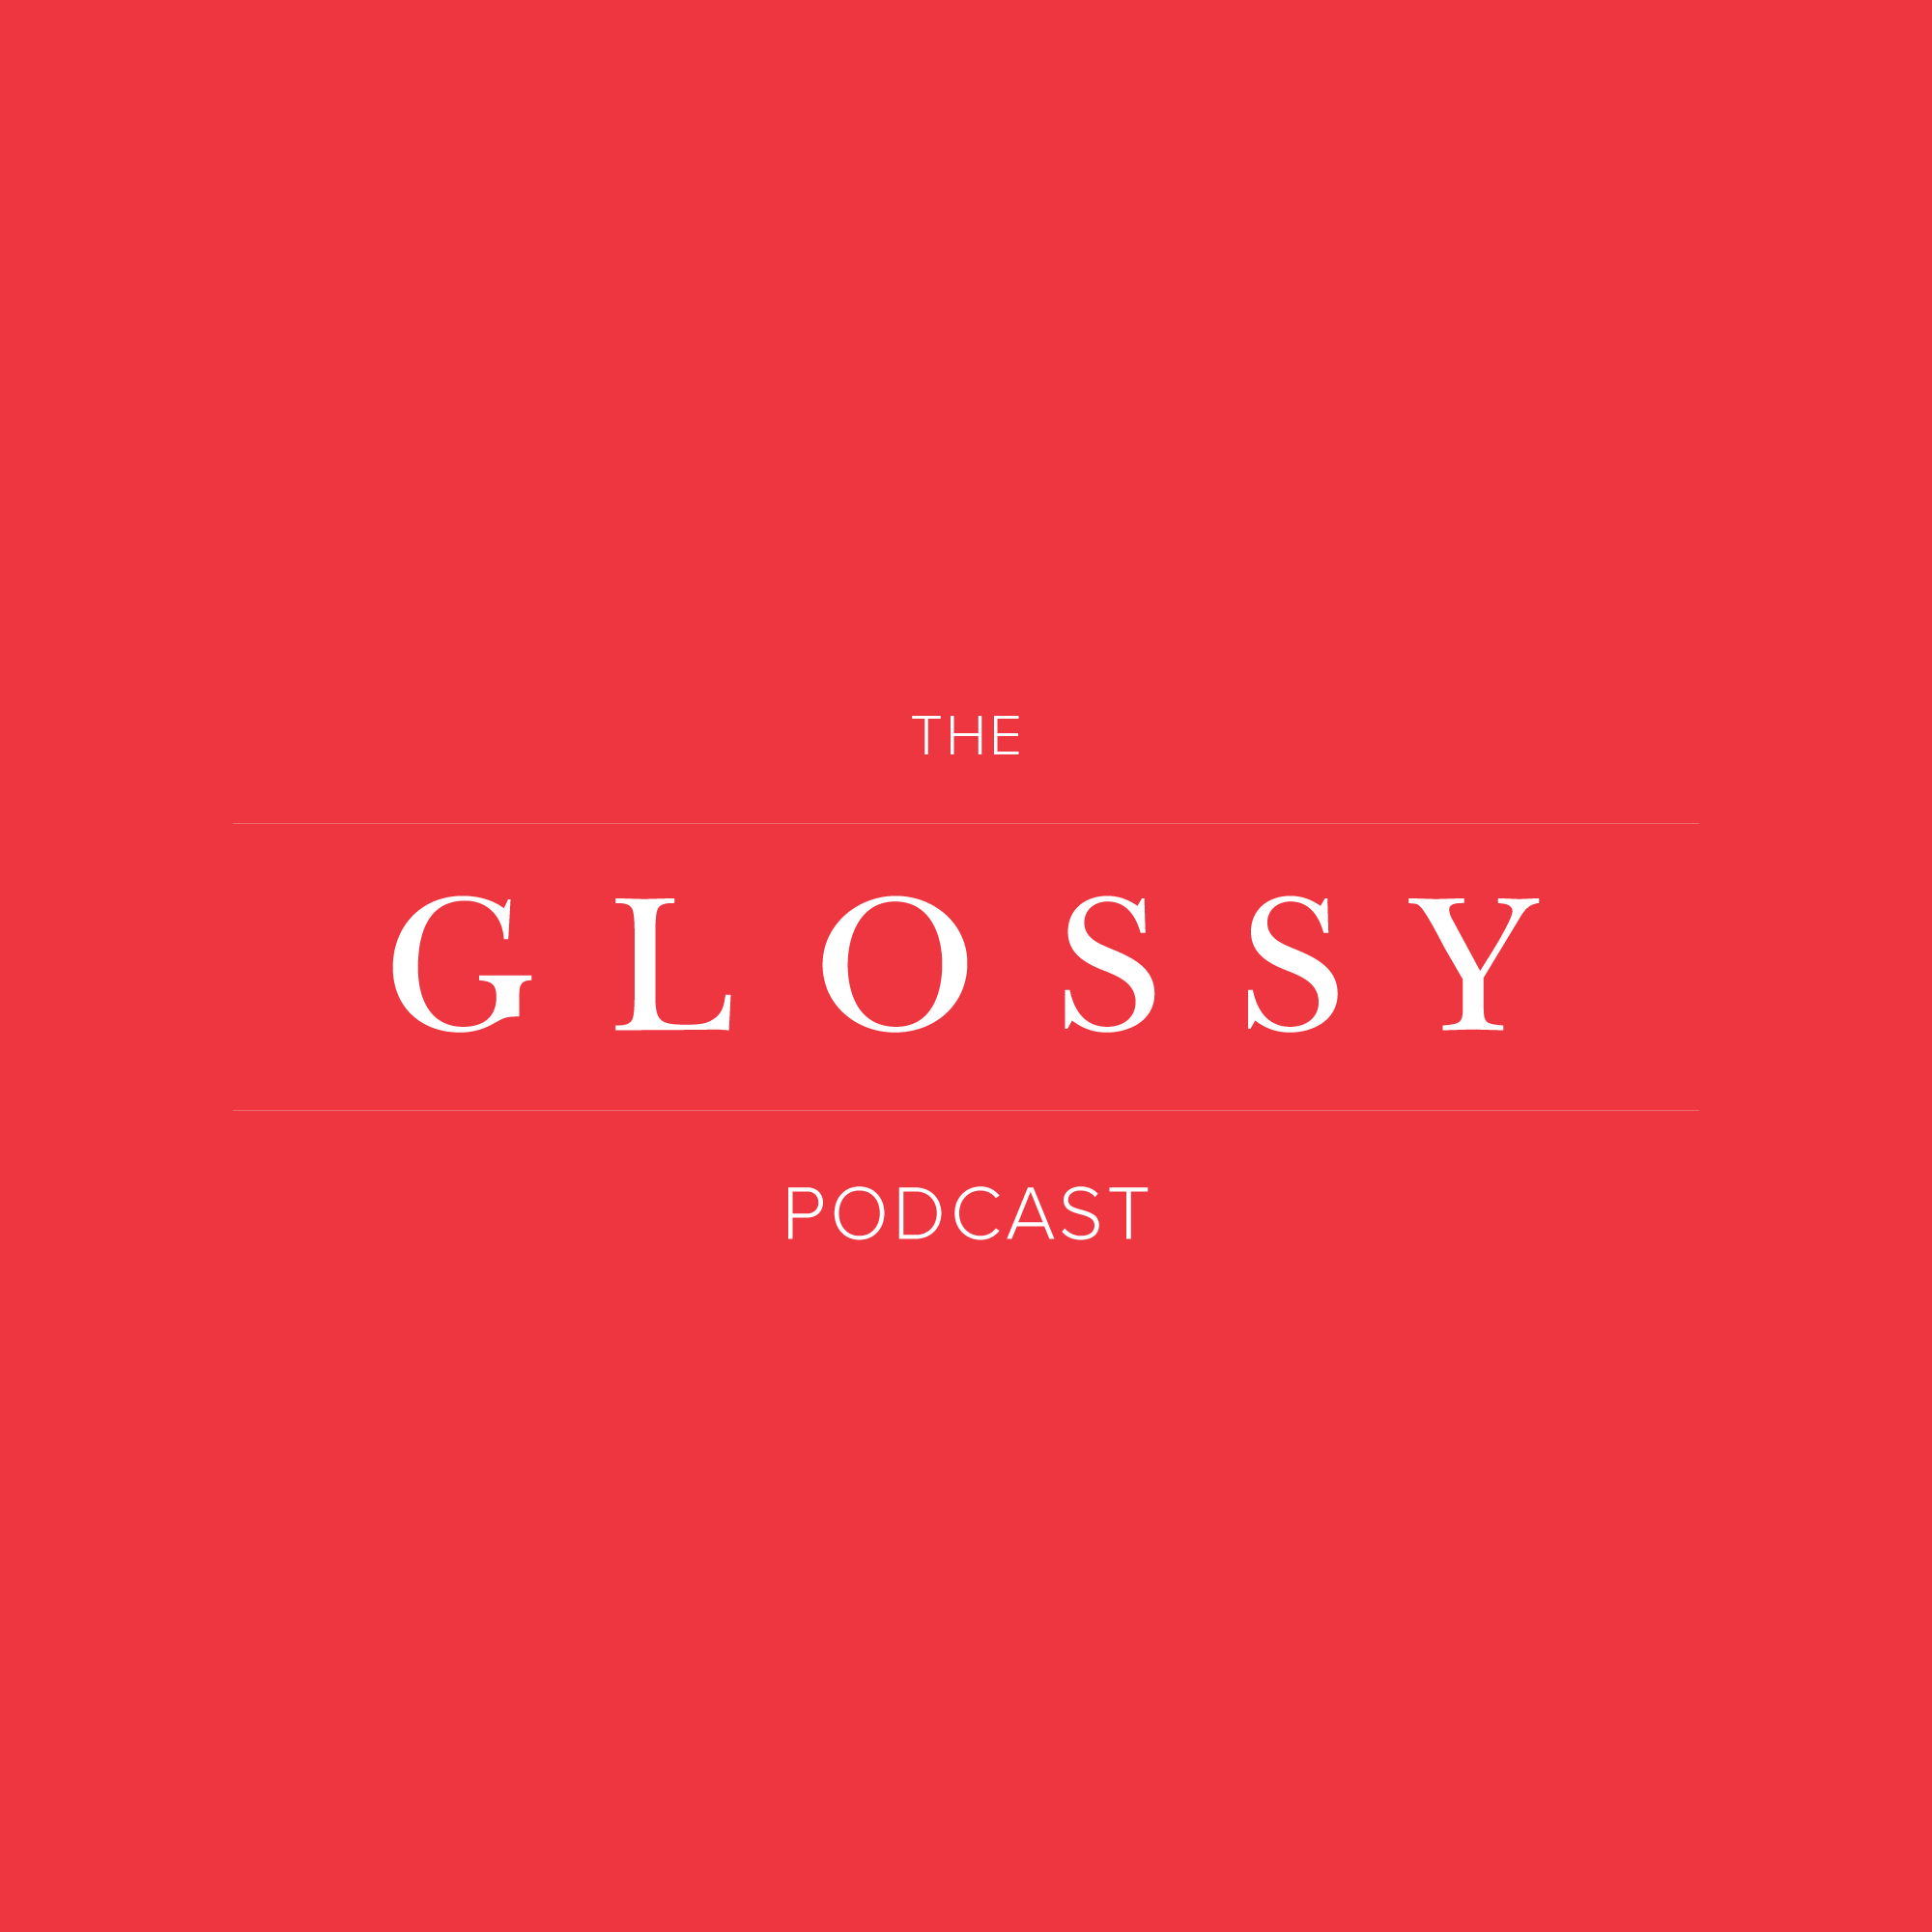 glossy-podcast.png